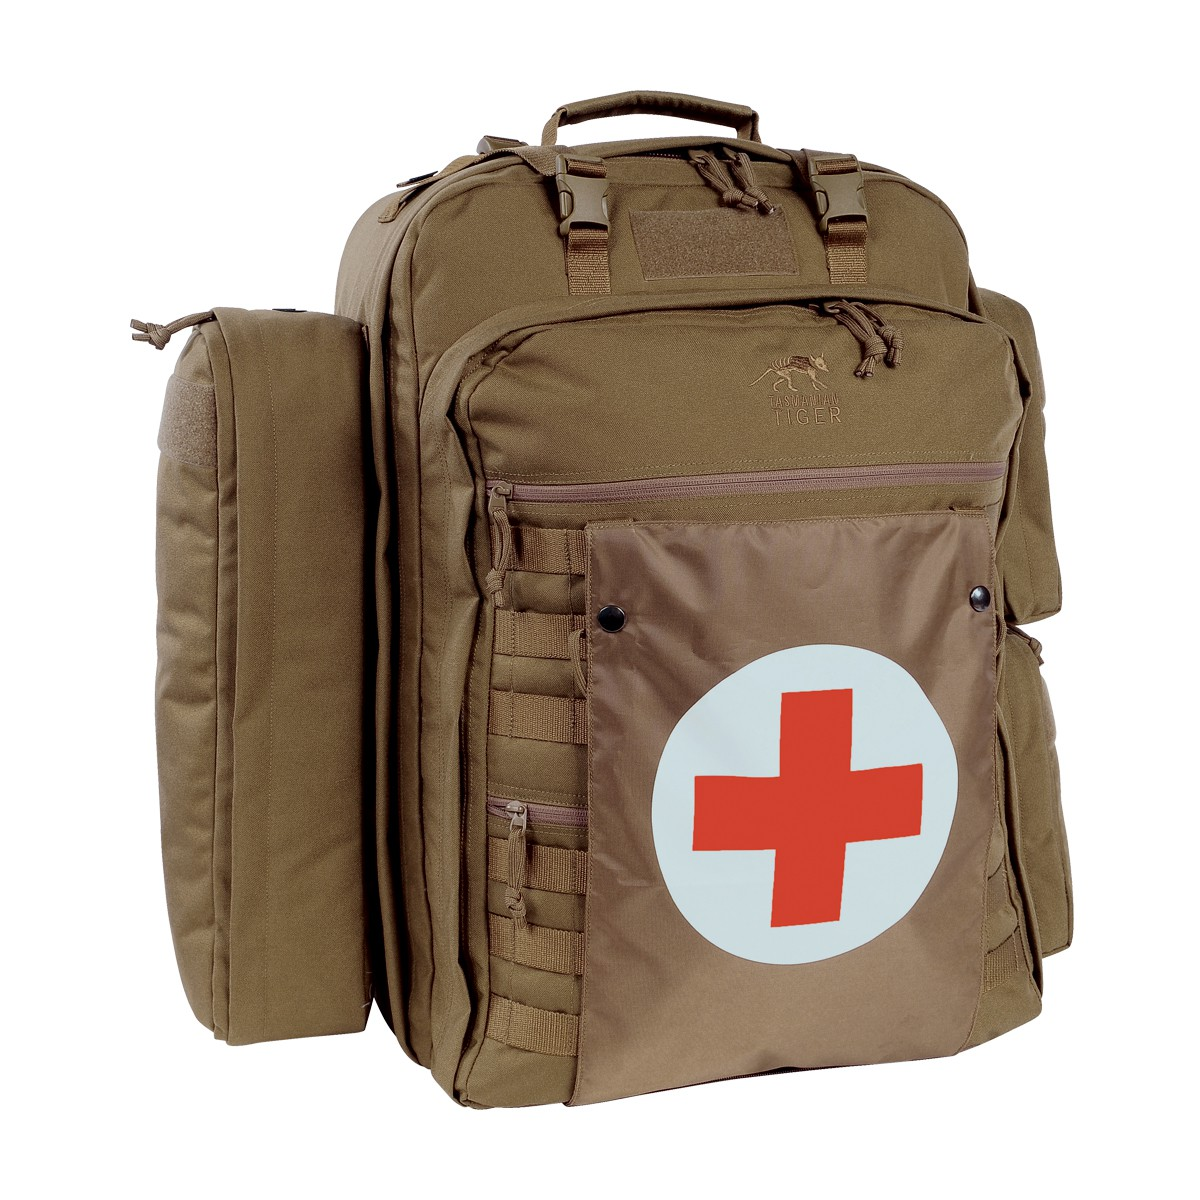 Рюкзак TT FIRST RESPONDER MK III coyote brown, 7816.346 ... 8cd19f9769b